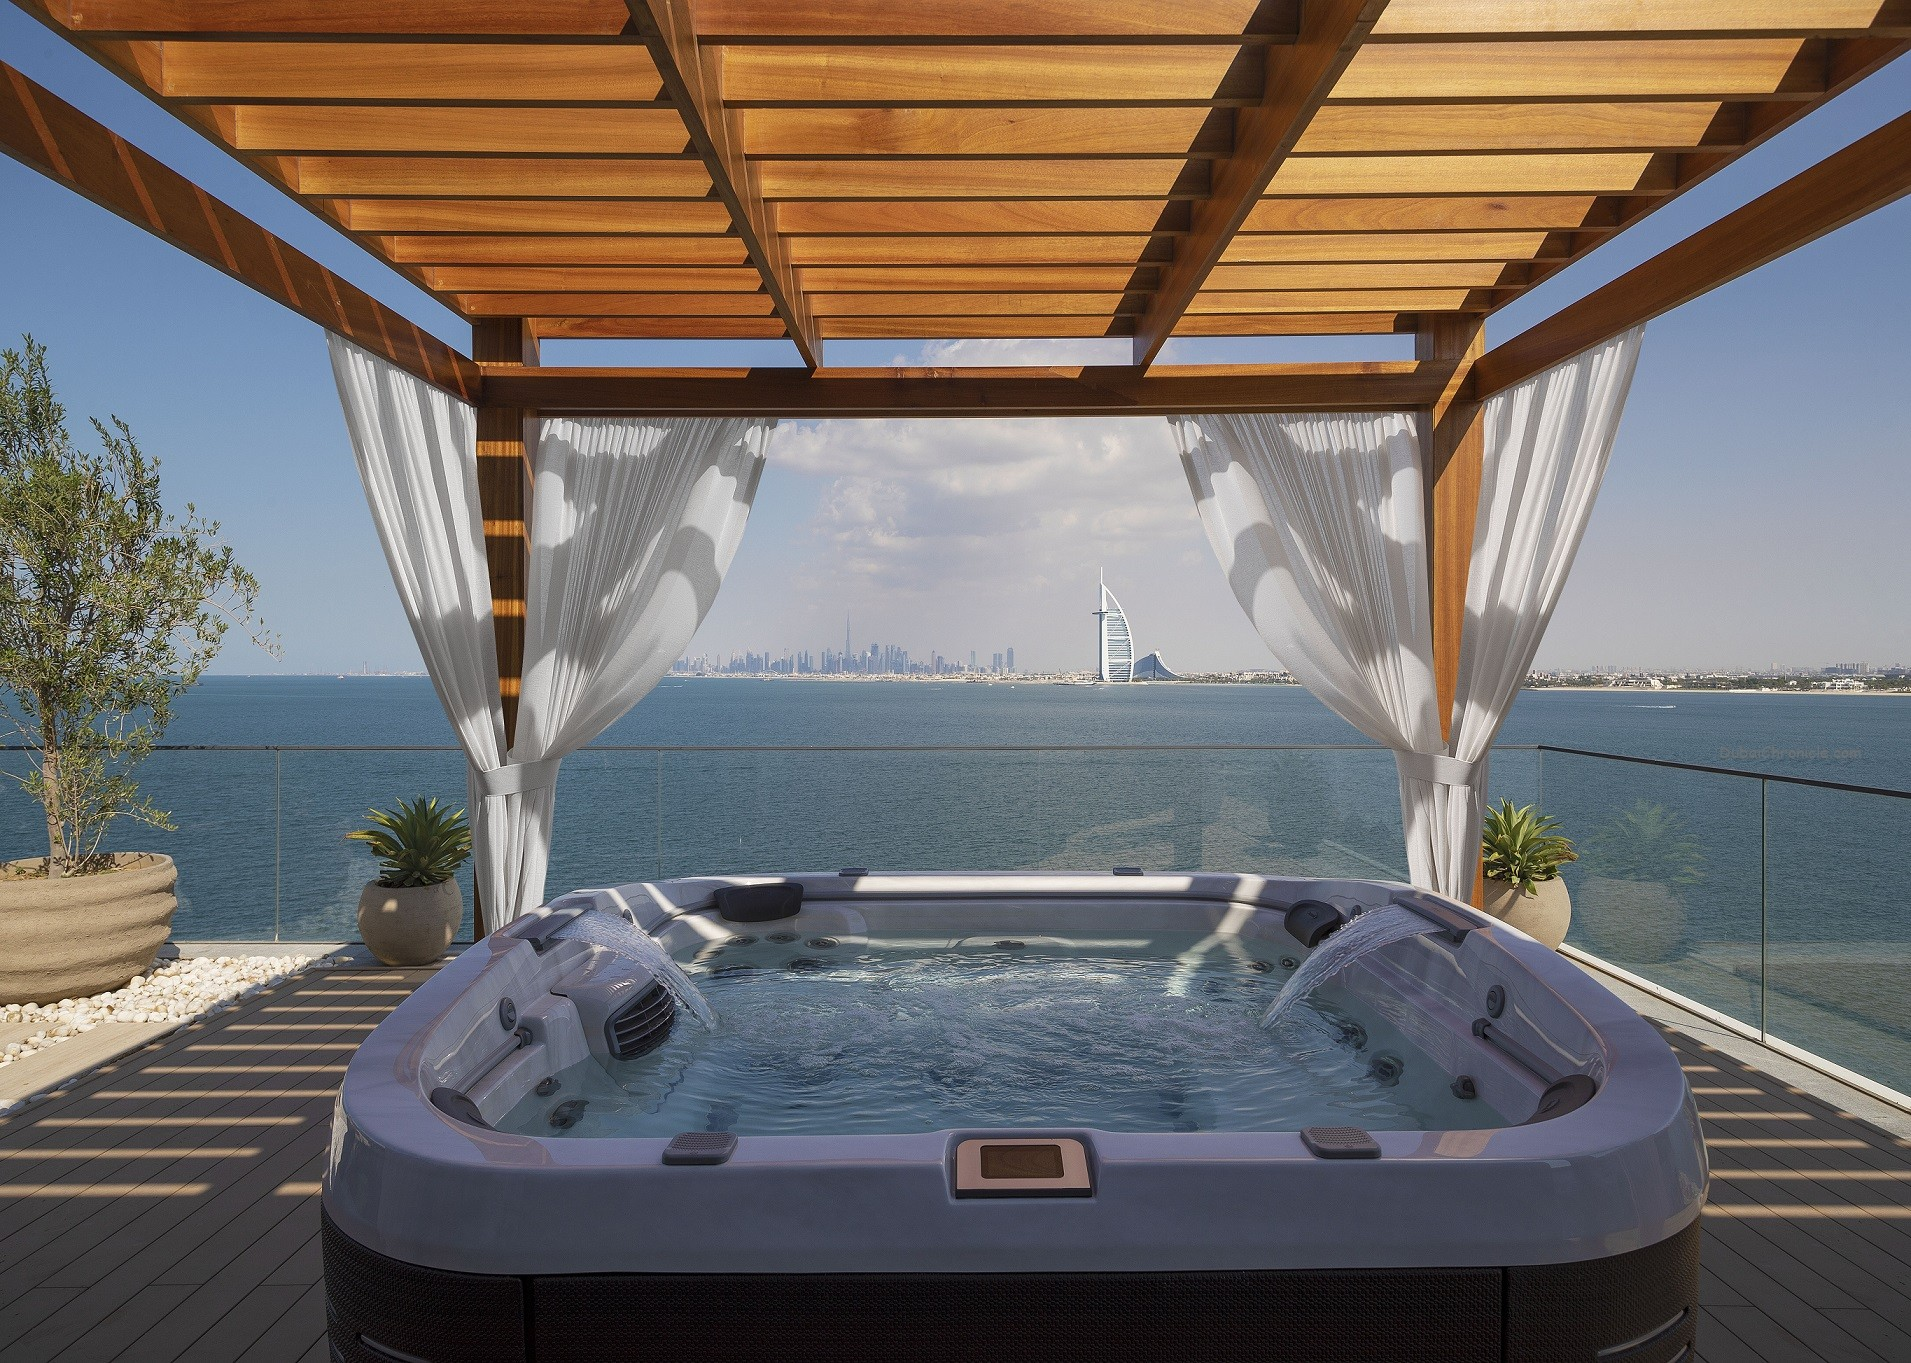 Jacuzzi with Curtains